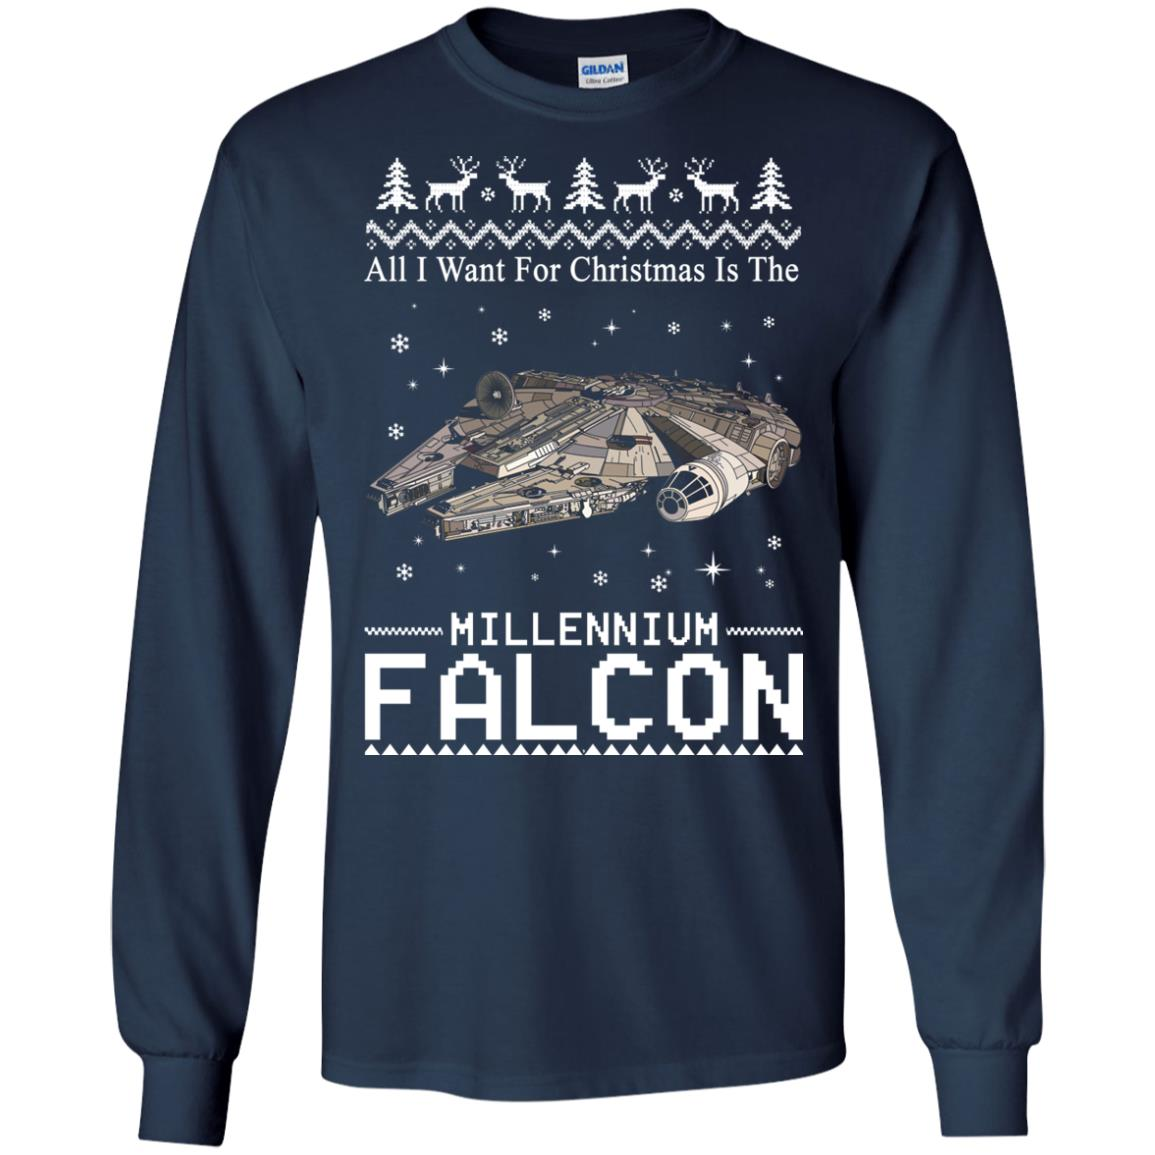 image 2134 - All I Want For Christmas is The Millennium Falcon Sweater, Ugly Sweatshirt